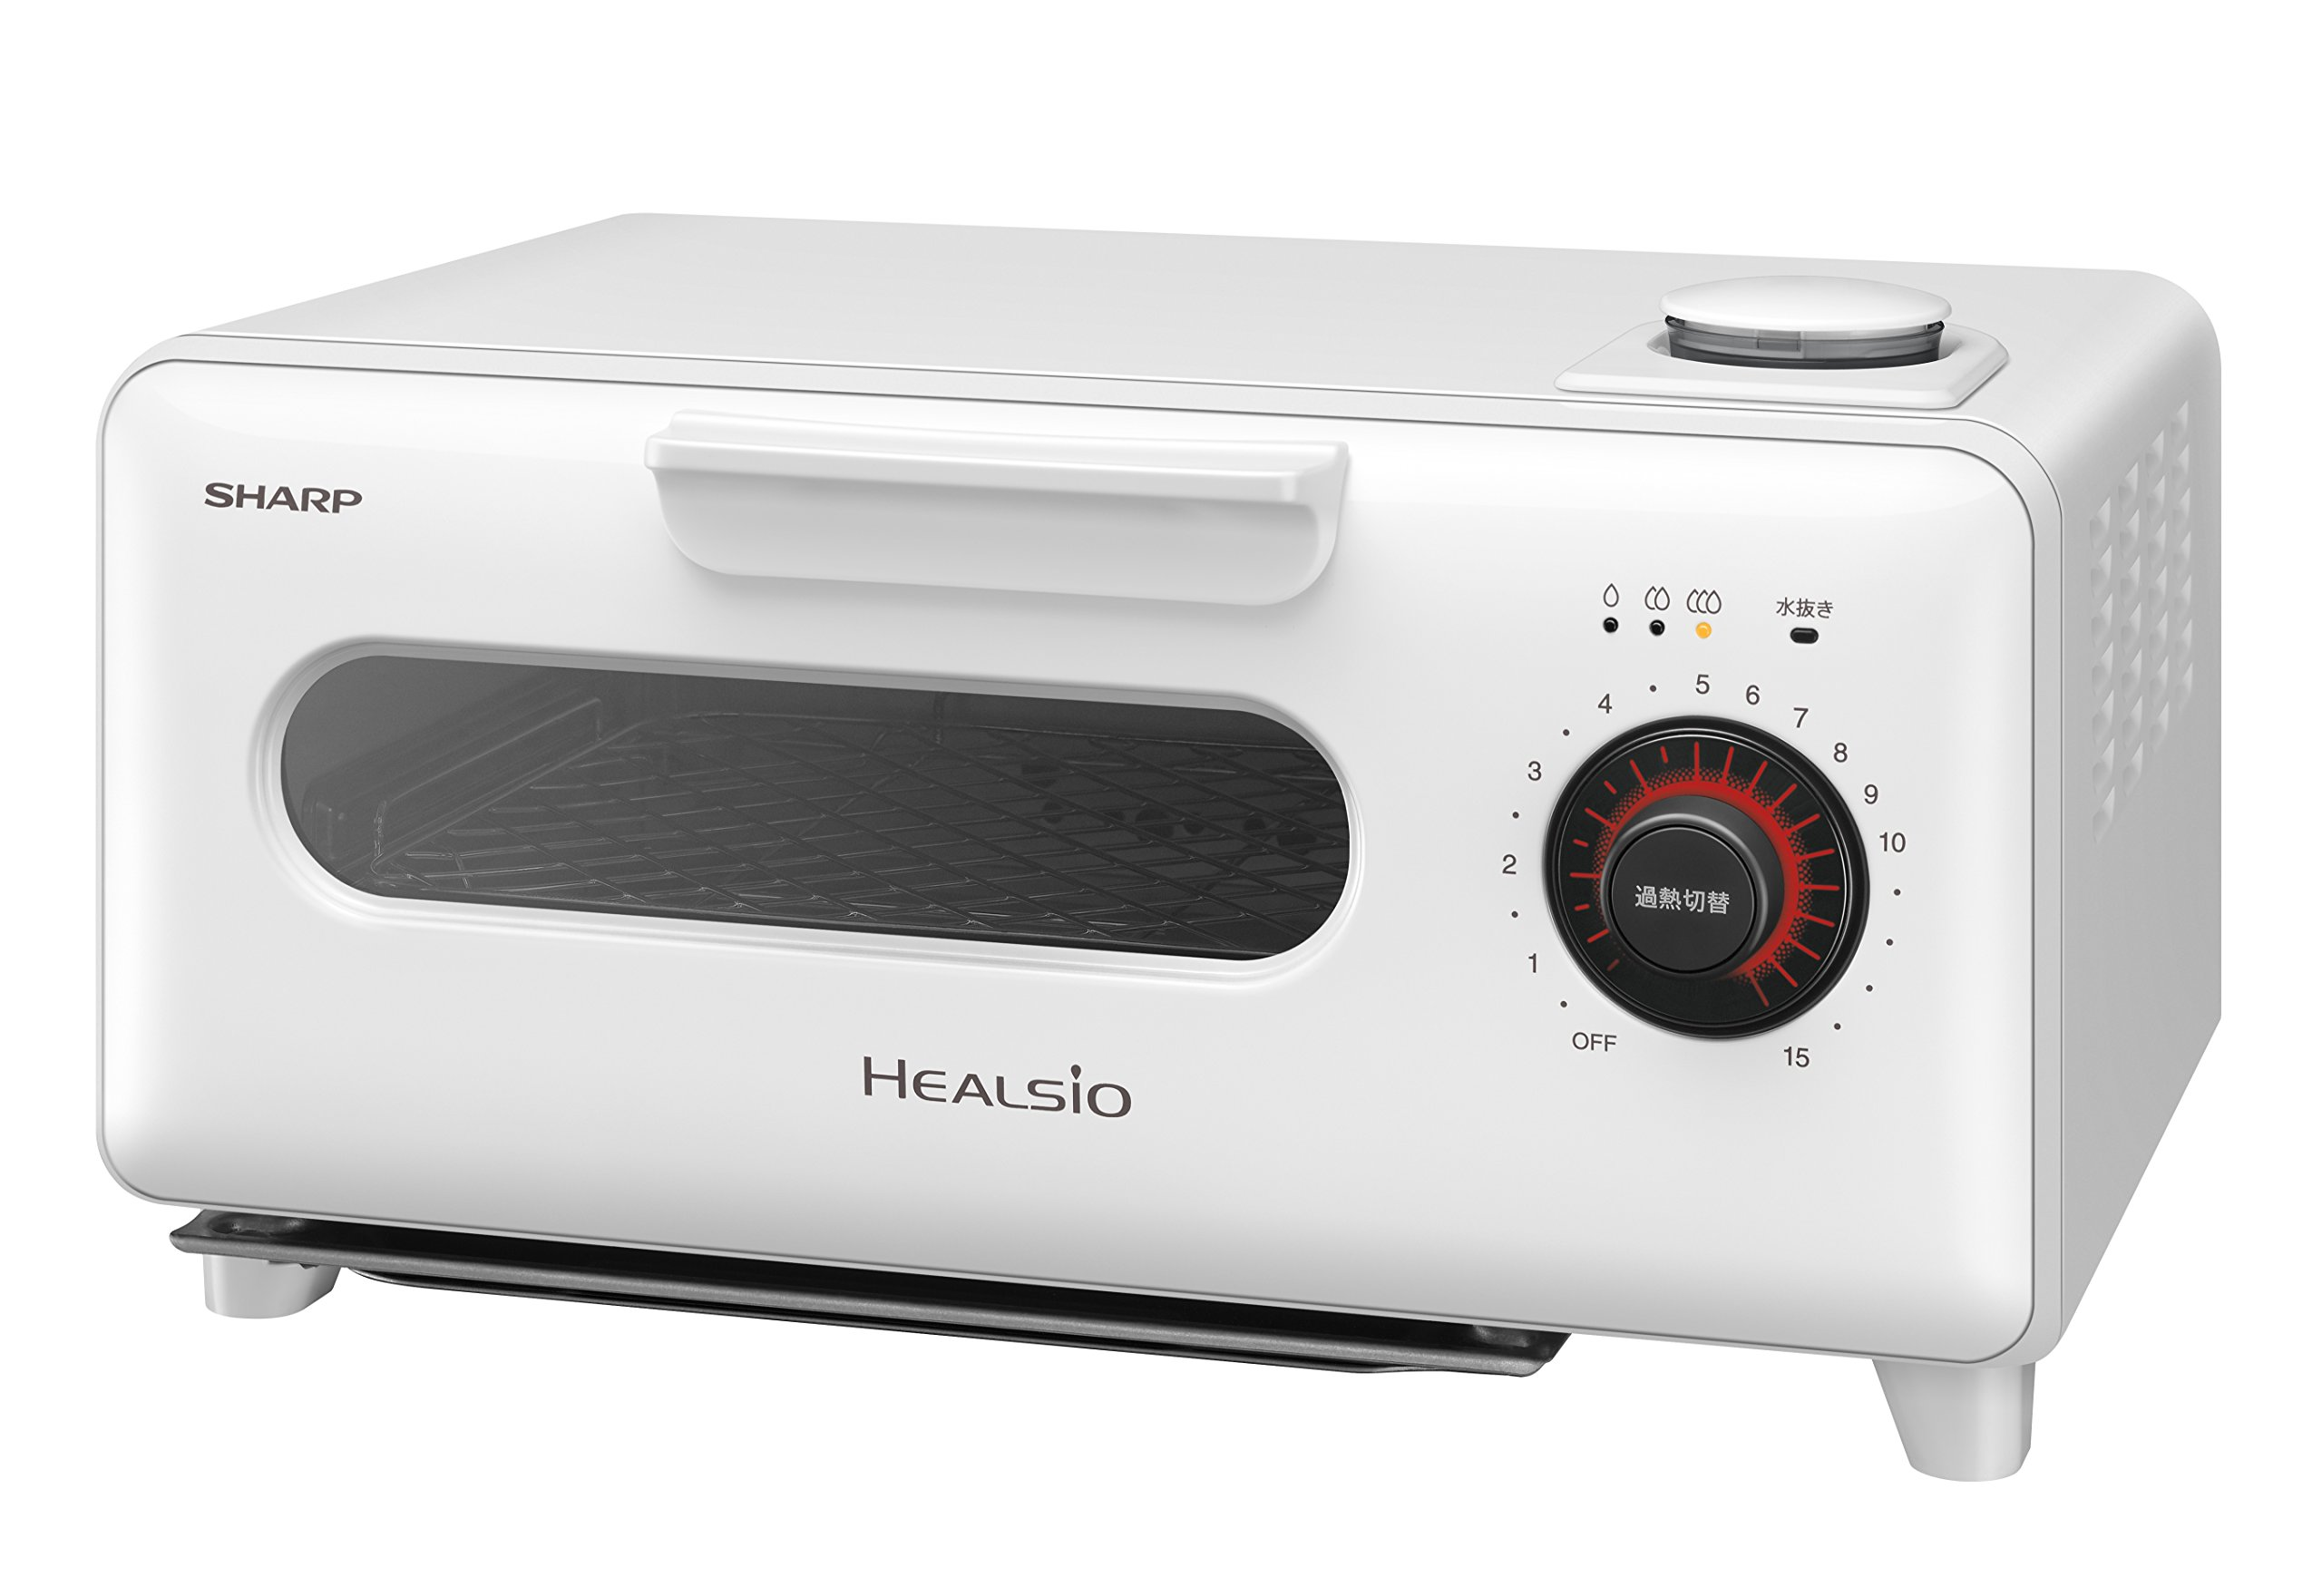 SHARP Water oven ''HEALSiO Gurie'' AX-H1-W (White)【Japan Domestic genuine products】